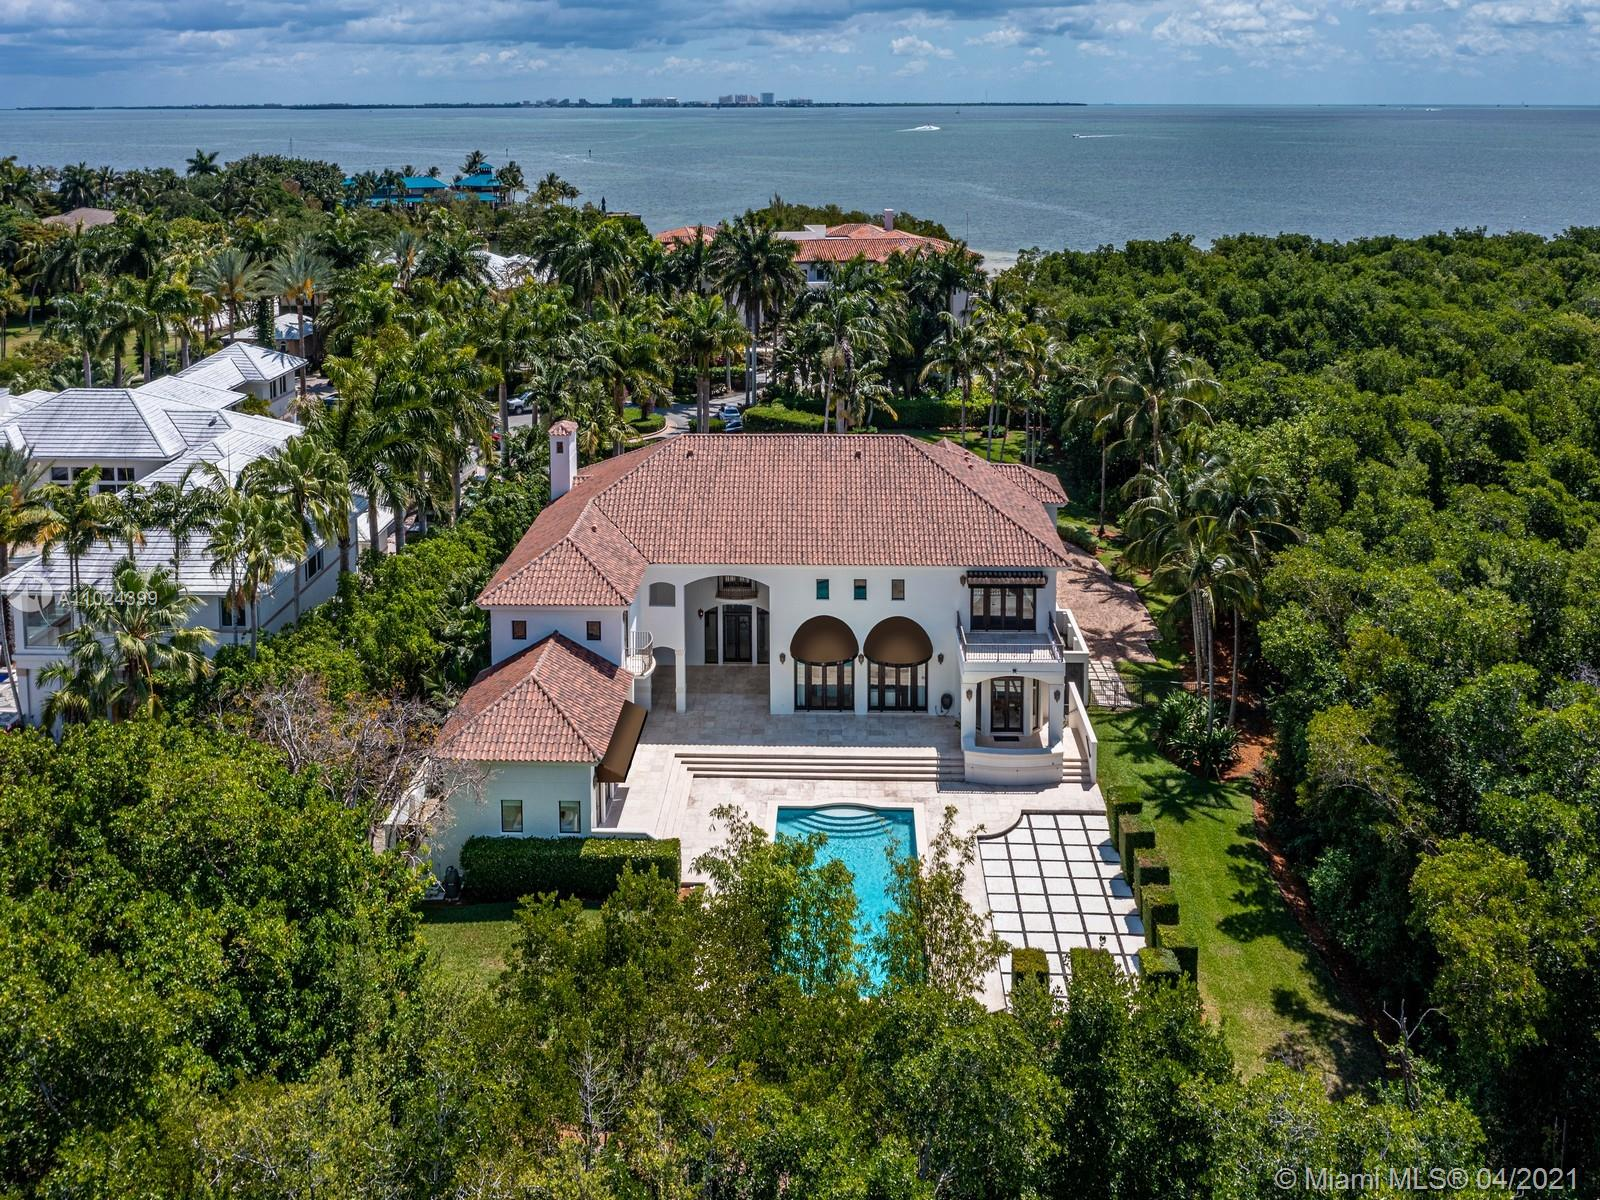 Located behind the gates of Tahiti Beach,one of Miami's most exclusive communities in Coral Gables this stunning Mediterranean estate is ideally located at the end of a private cul-de-sac.Offering a lush LOT OVER ONE ACRE.This home features 10,768 SF Total,7 beds,6.5 baths,a double-height foyer&family room, oversized master bedroom w/a large balcony+a guest house w/a full guest house.W/a large pool&extensive outside terraces,perfect for entertaining. Large kitchen with a butler's pantry.Including a large office w/ a full bath and balcony,3 car garage,service room,impact windows throughout&recently updated roof.Don't miss this incredible opportunity to live in one of 26 homes in this private community,complete with a private beach, tennis courts &access to all Cocoplum amenities.